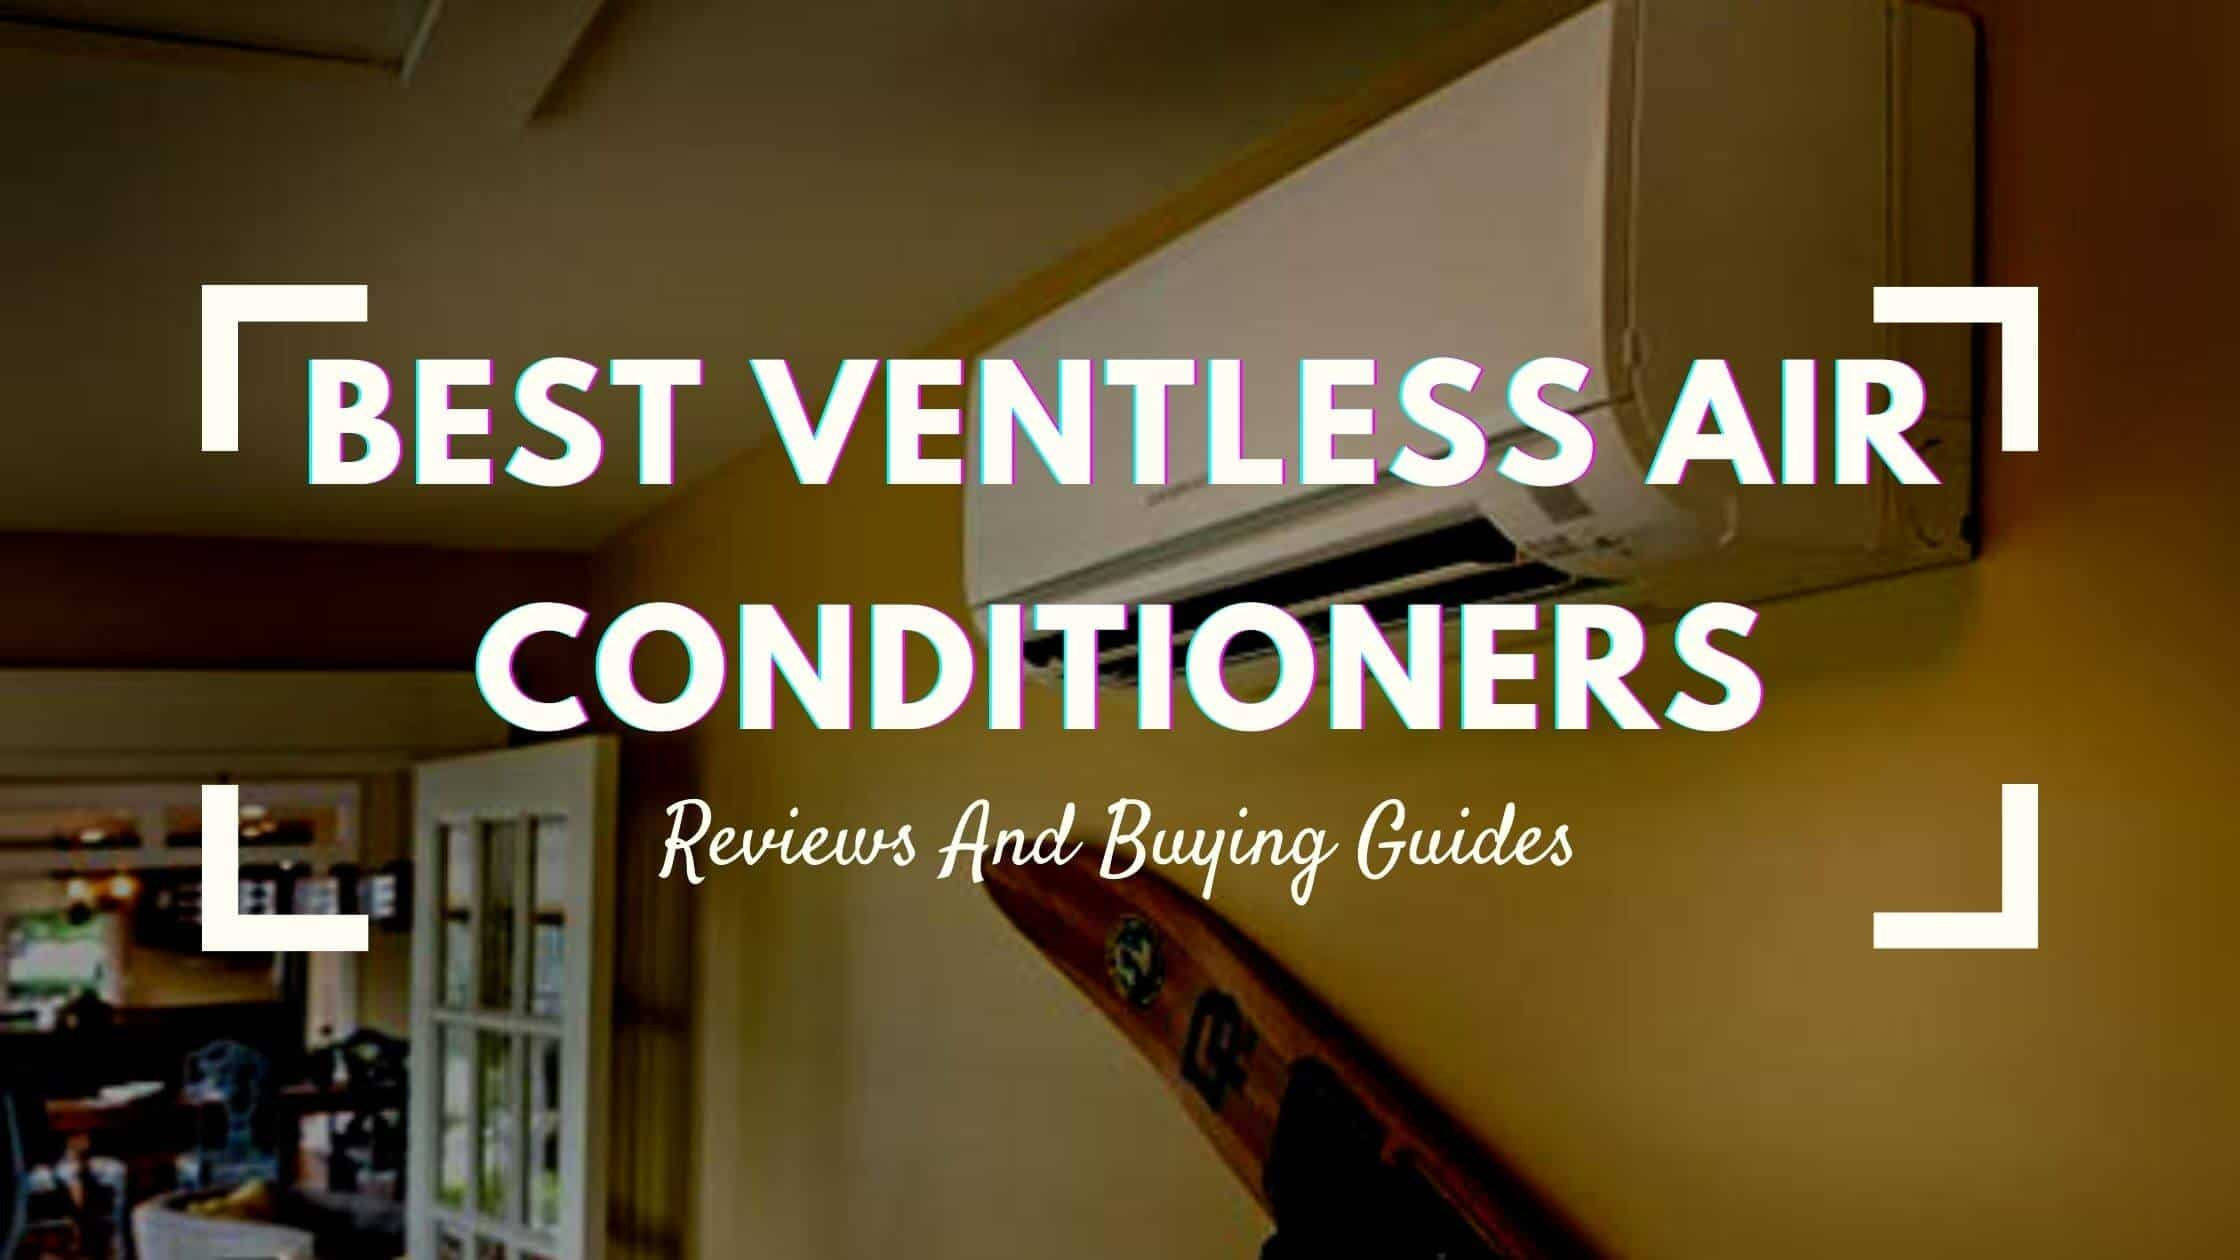 Best Ventless Air Conditioners